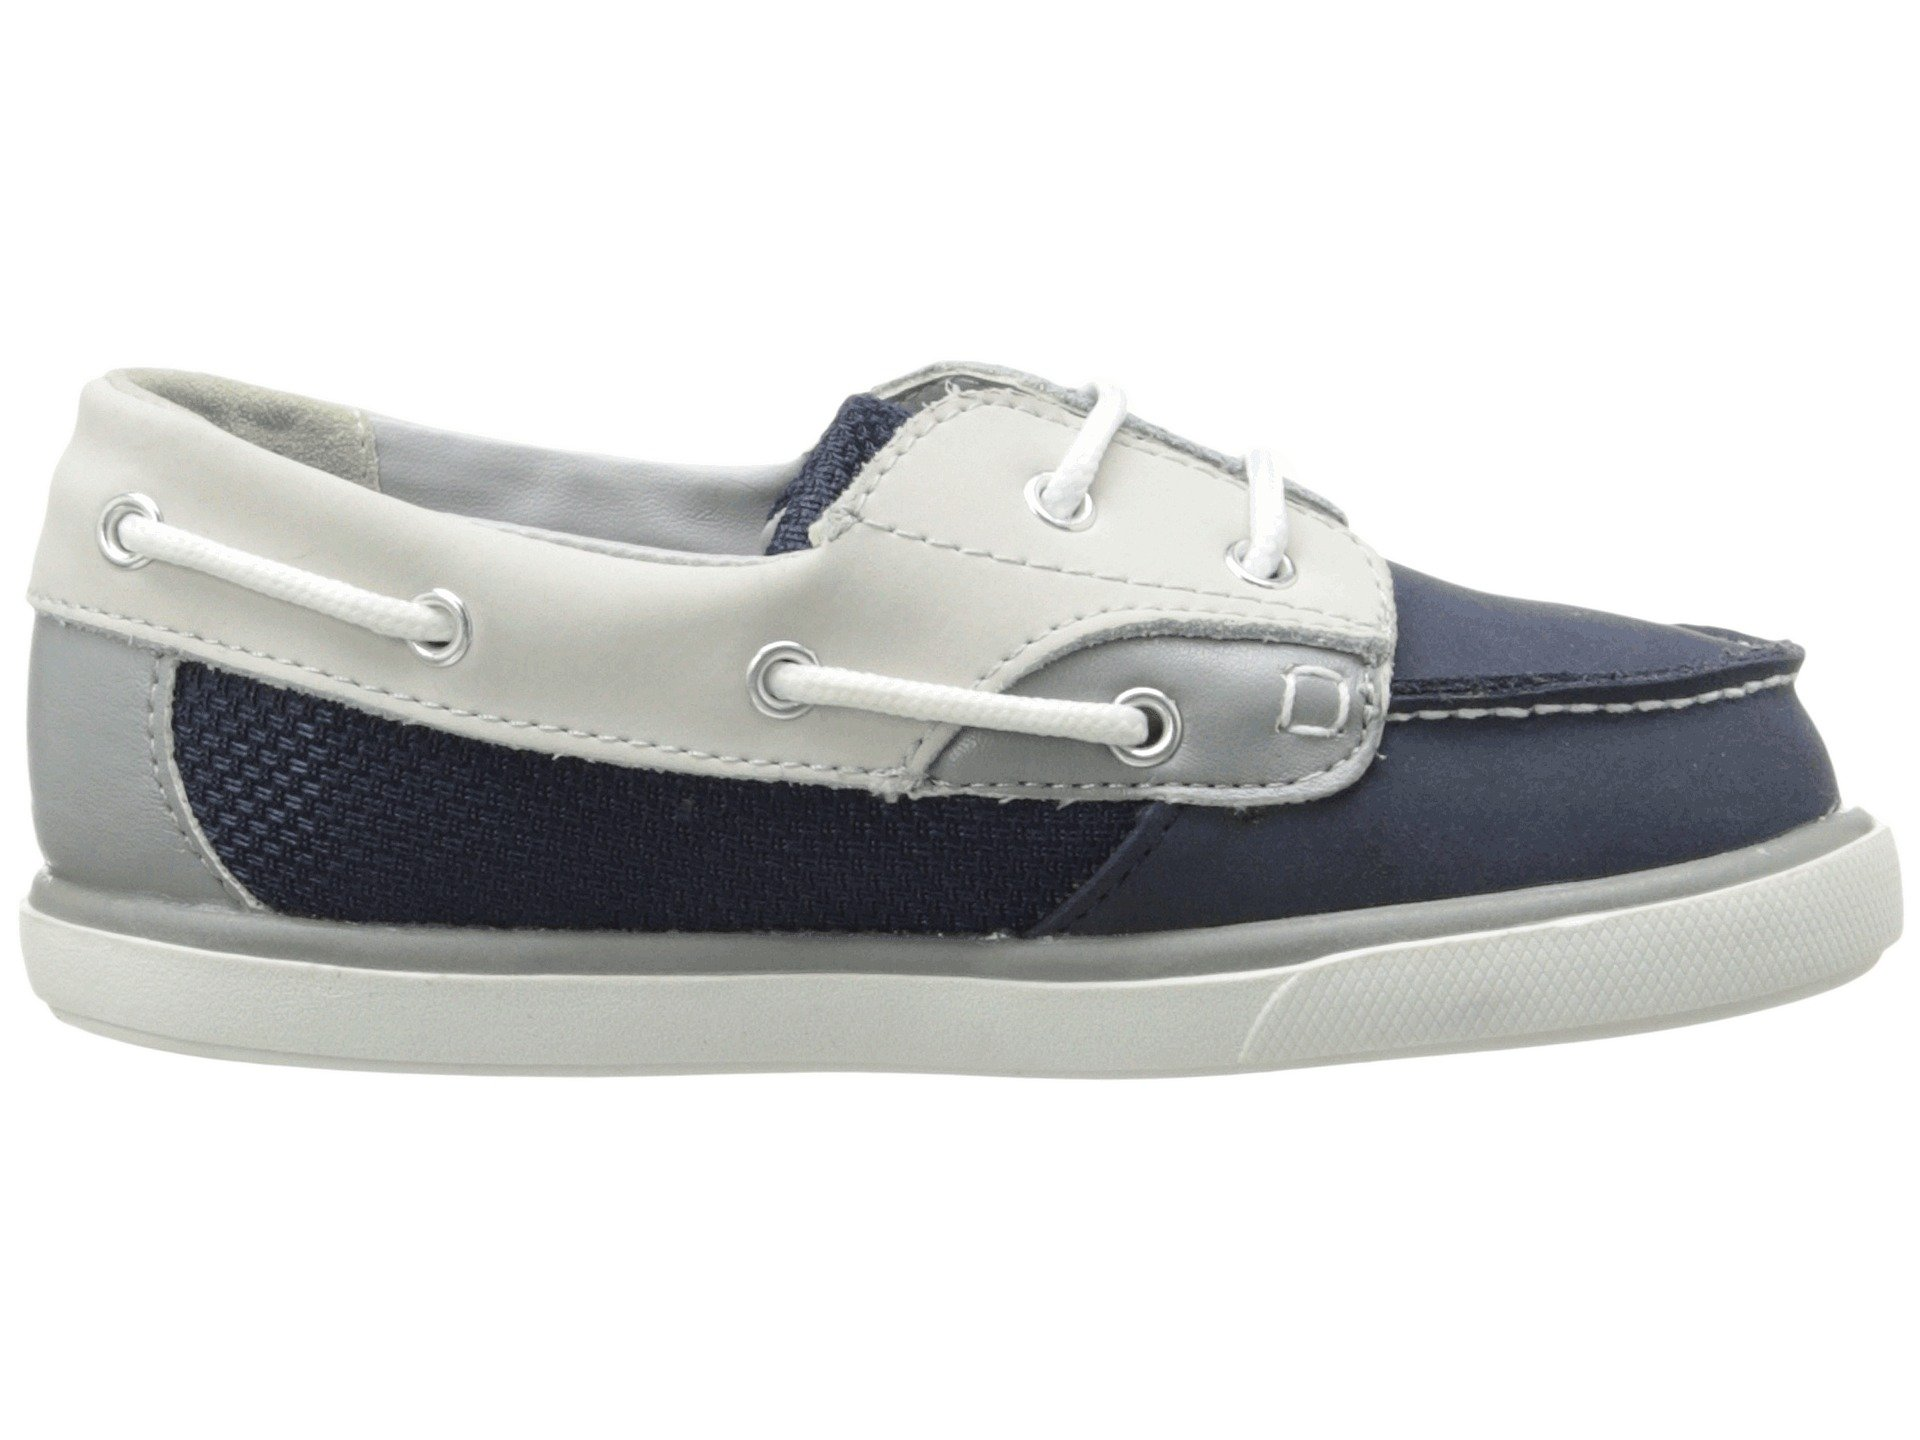 If you need boys' casual shoes for an infant or toddler, you'll discover a range of possibilities at Payless. You can select from Rocker Casuals from Teeny Toes, toddler Balboa sneakers from Smartfit, or Caleb slip-ons from Smartfit.